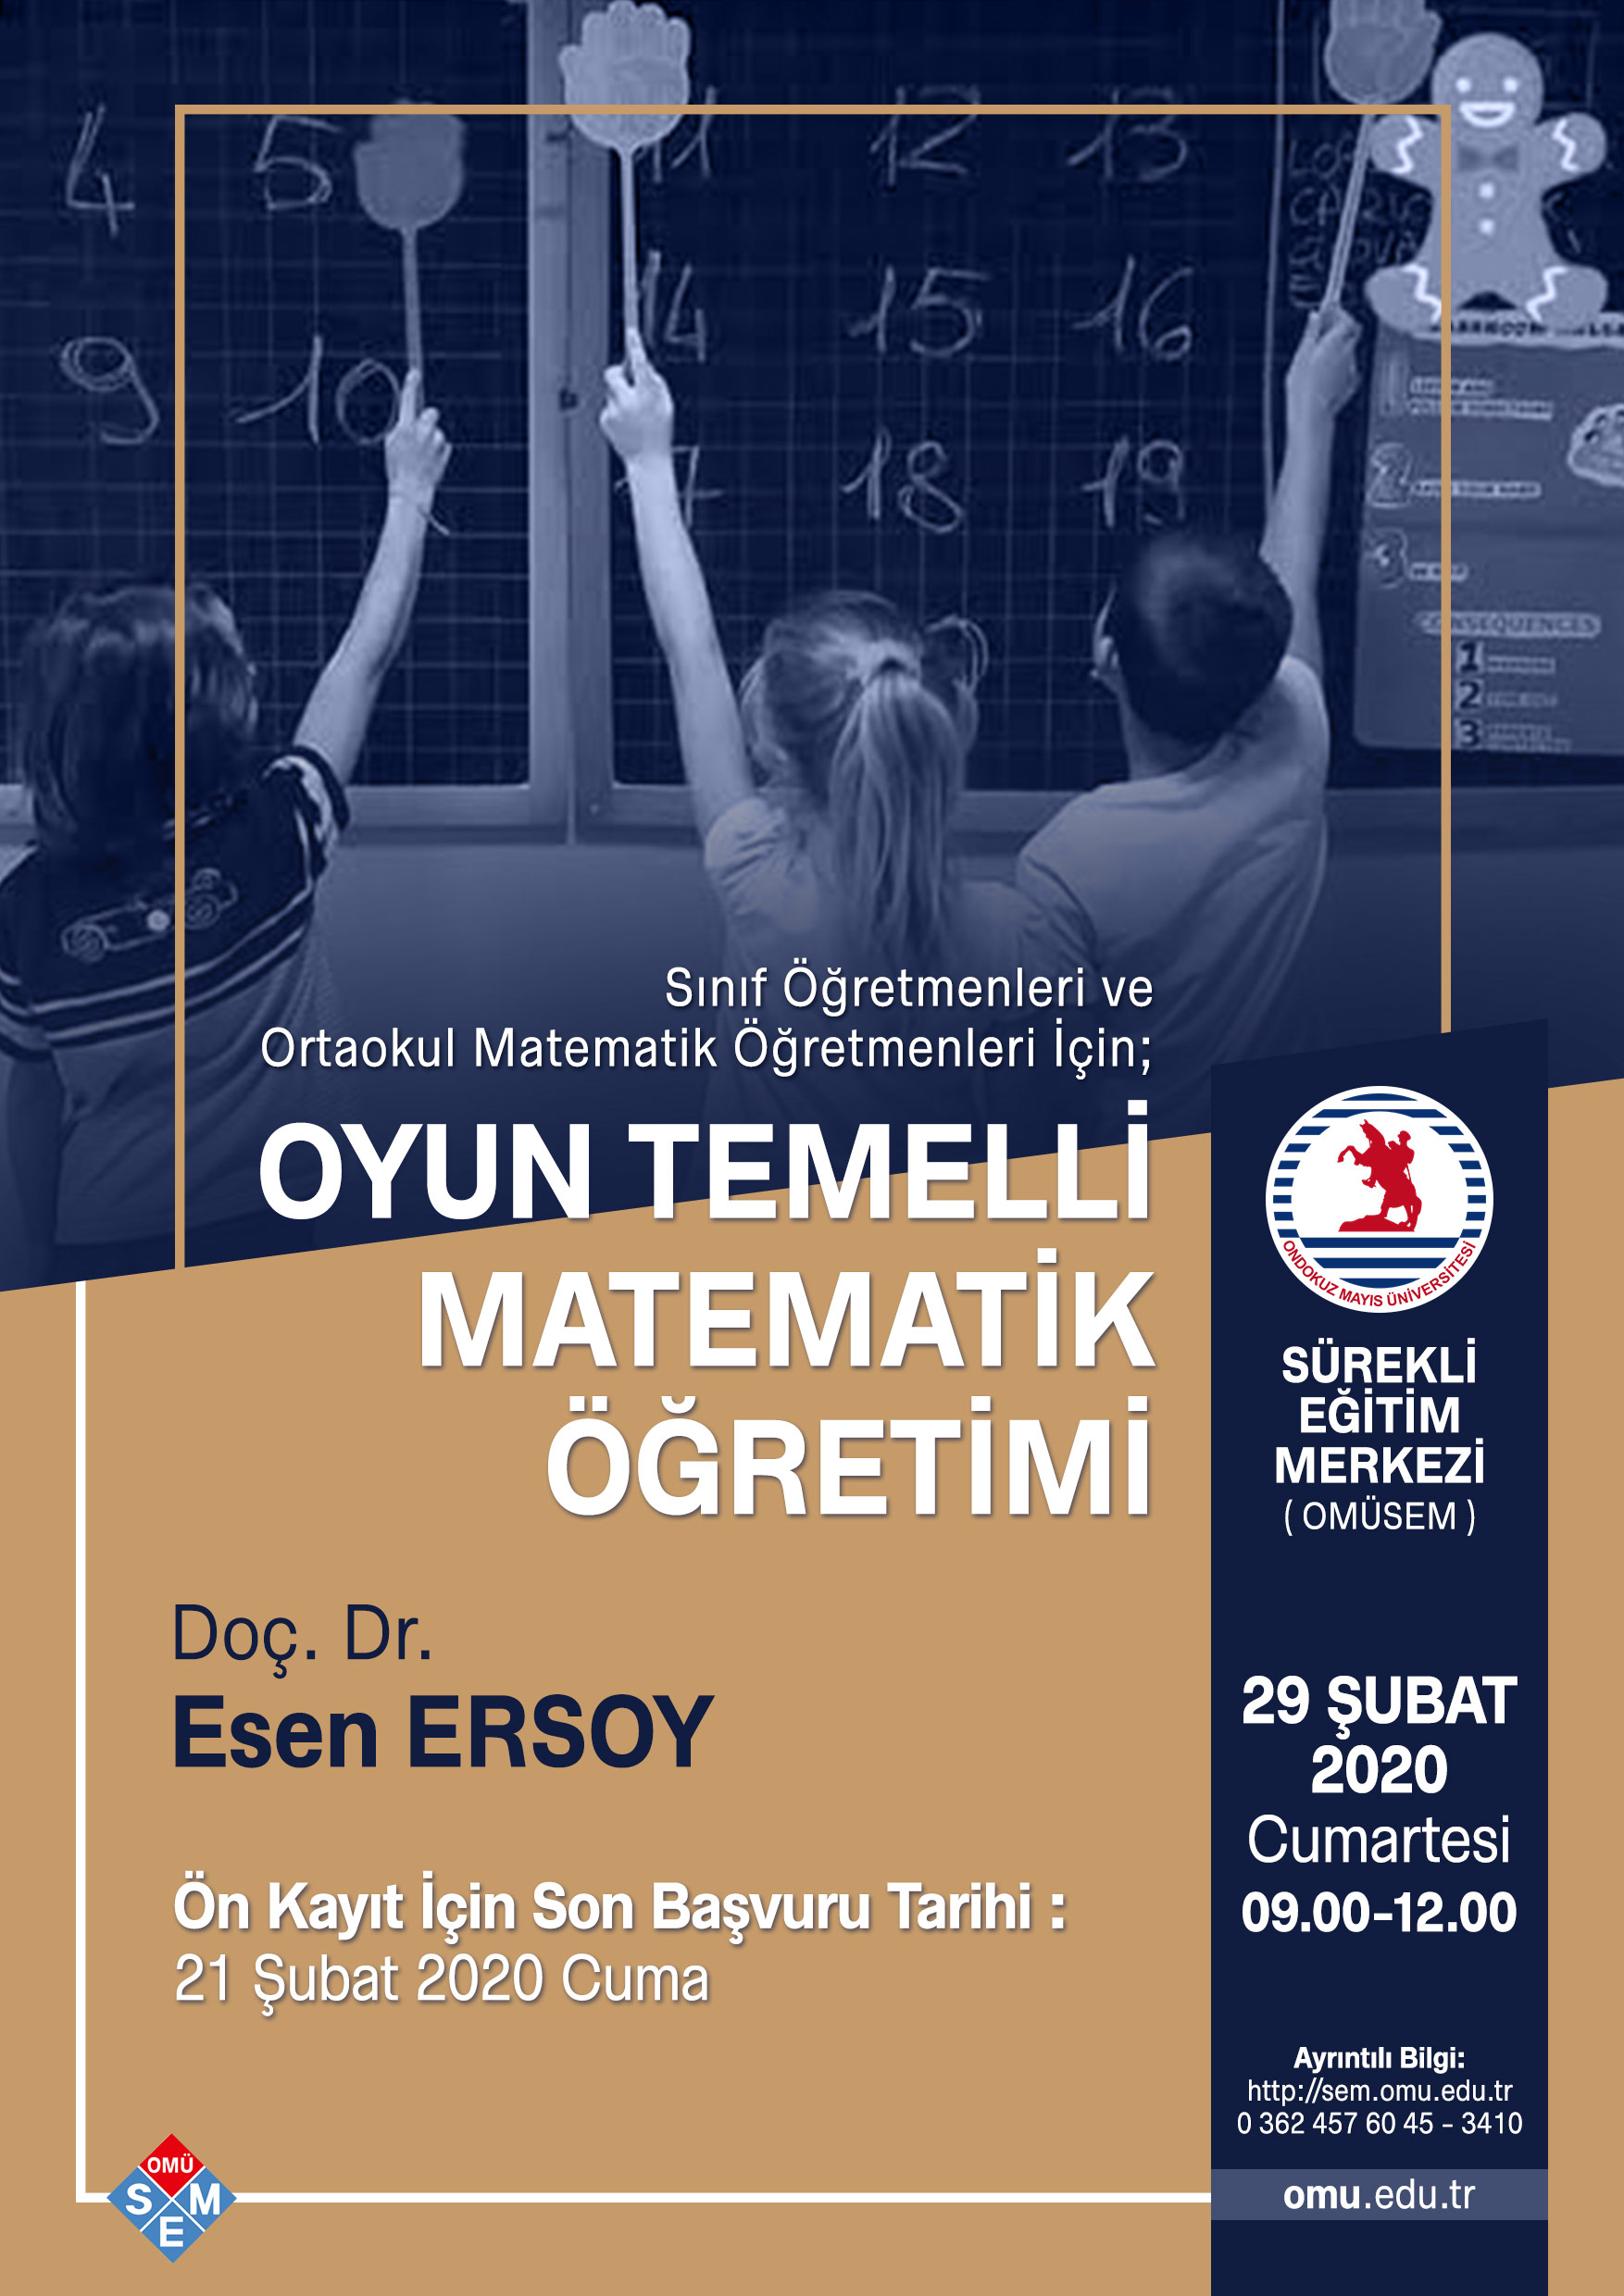 https://www.omu.edu.tr/sites/default/files/omusem_afis-oyun_temelli_matematik_ogretimi.jpg